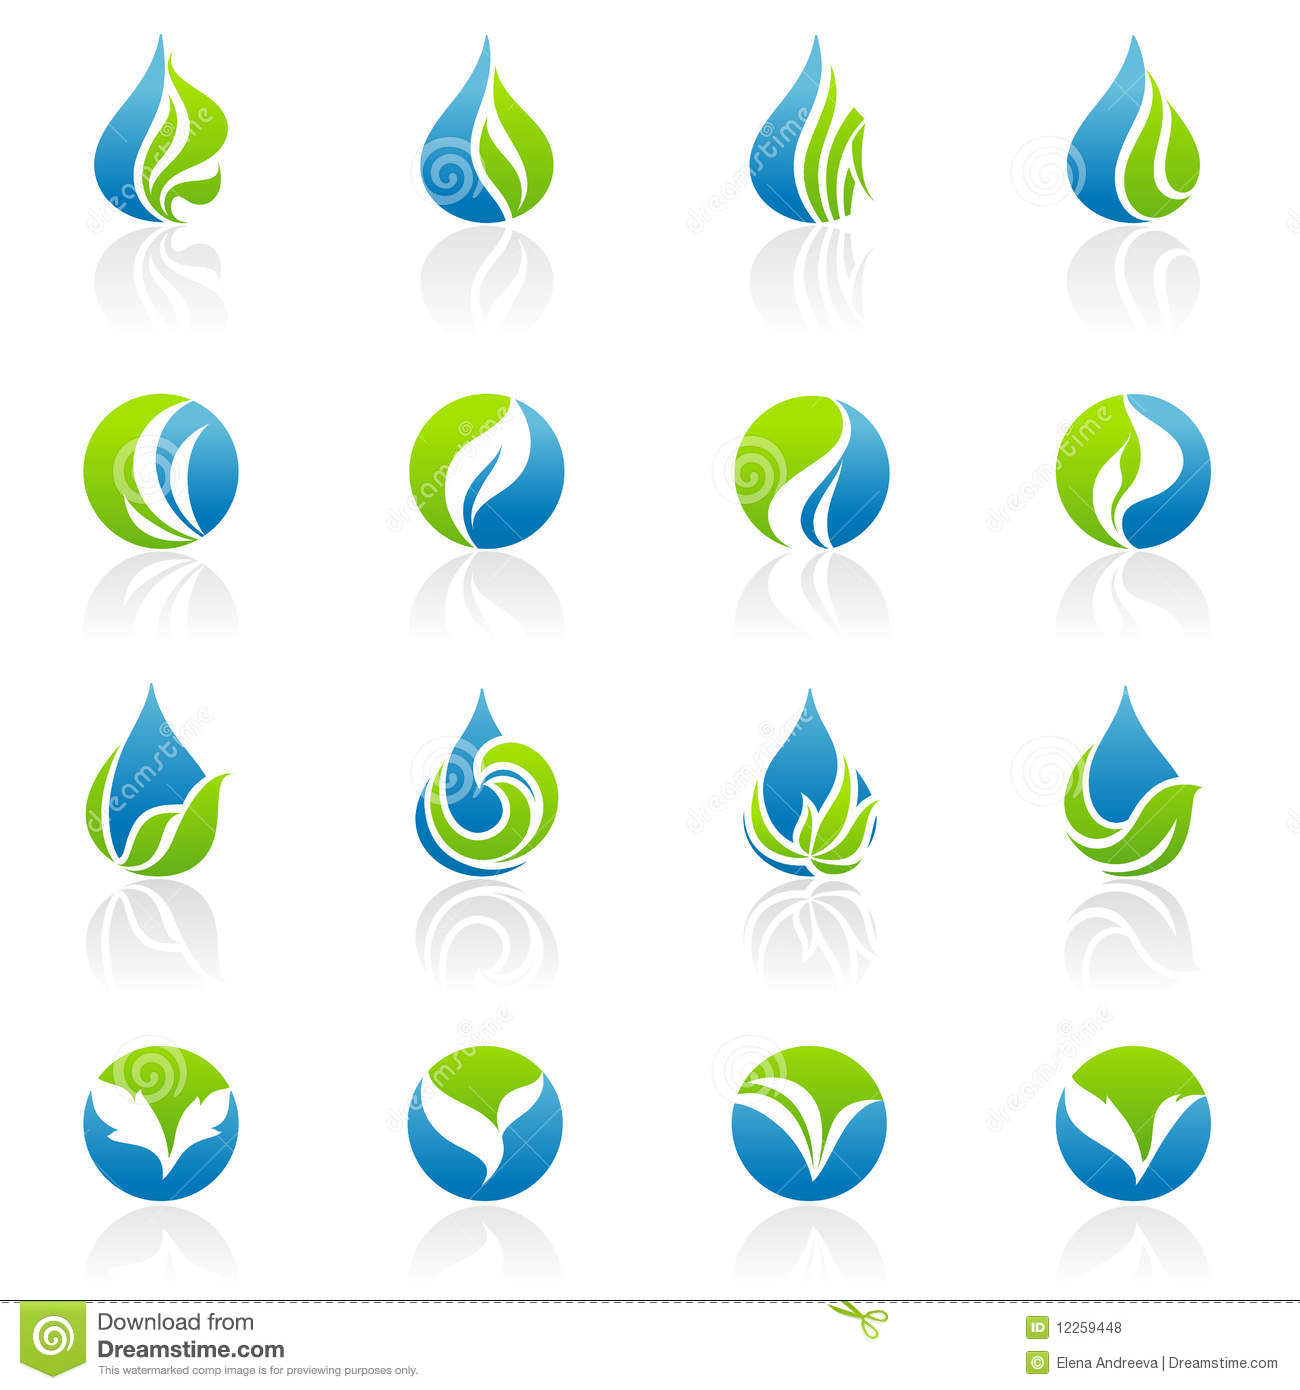 sample company logos free download - Fieldstation.co for Logo Design Samples Free Download  155fiz